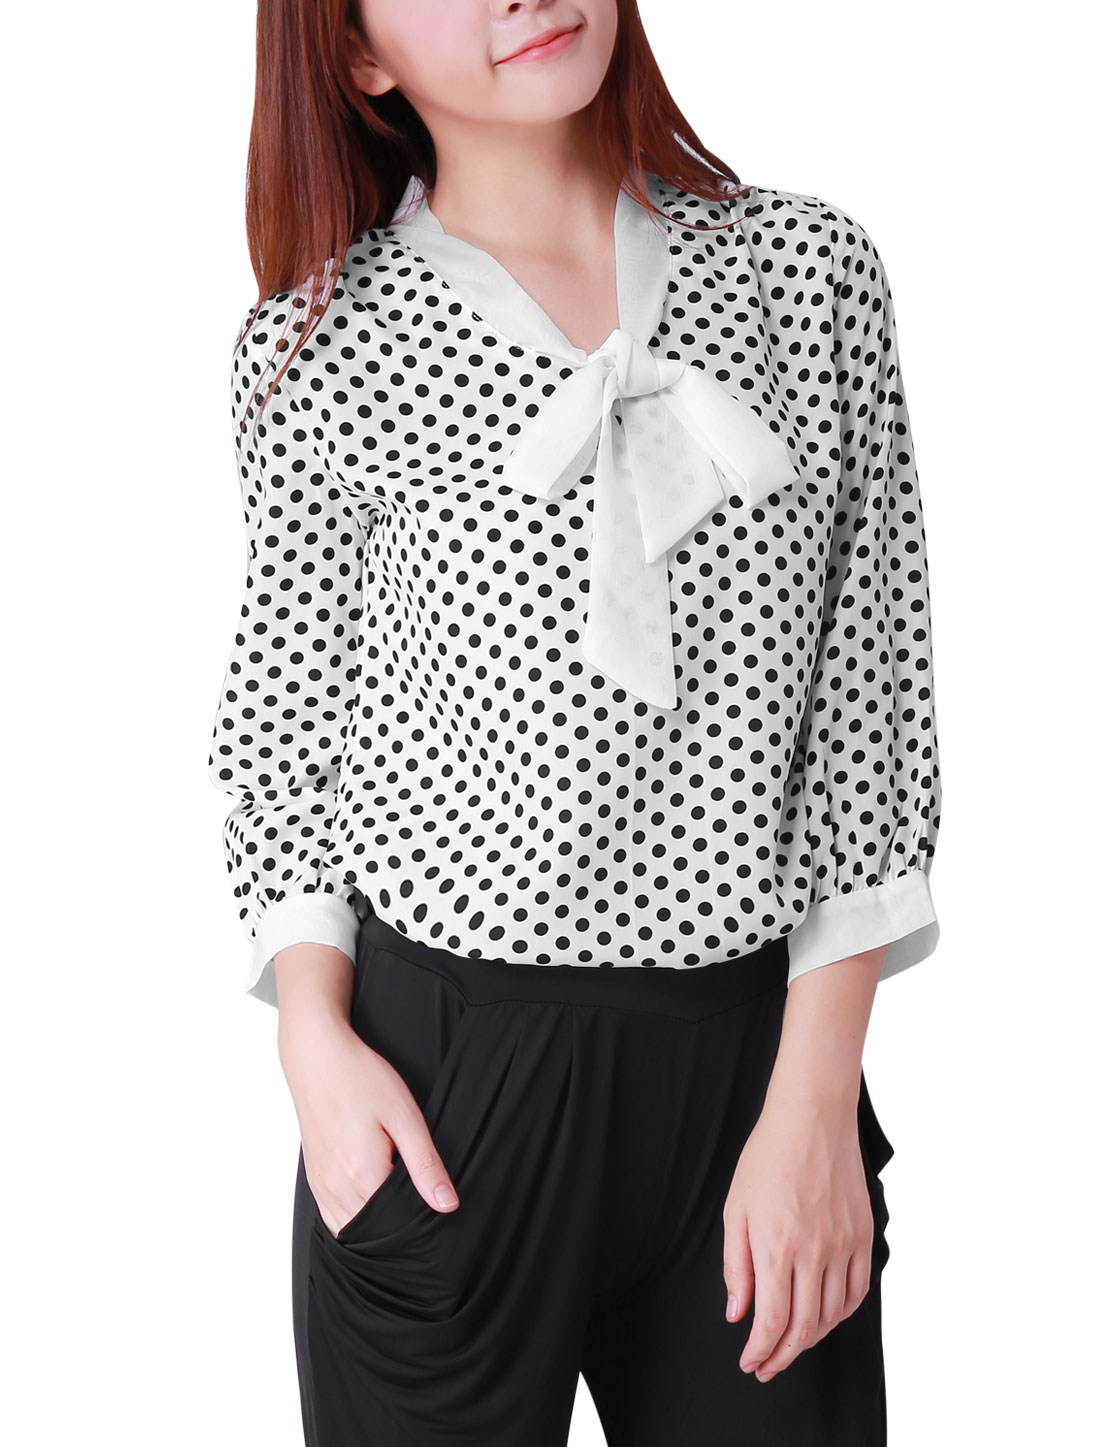 Ladies Polka-Dots Pattern White Casual Blouse Top S